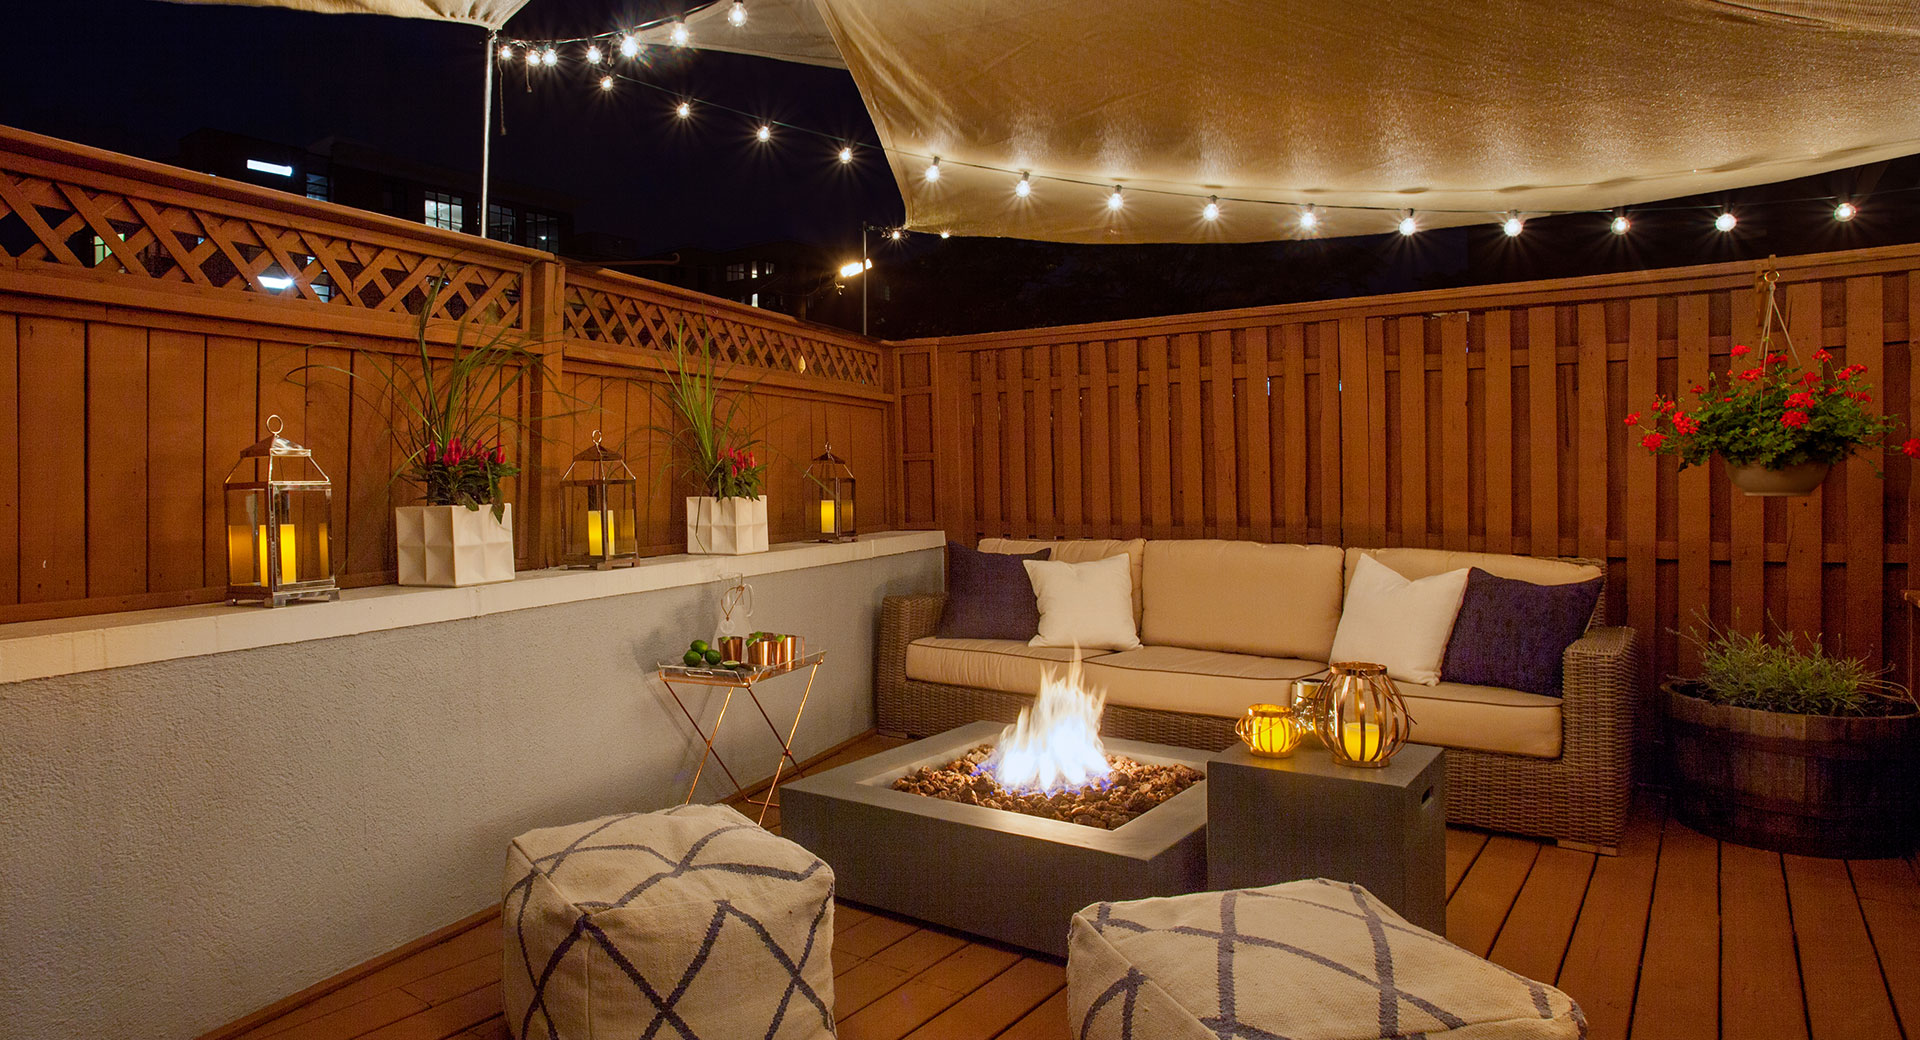 Deck Backyard Remodel Ideas